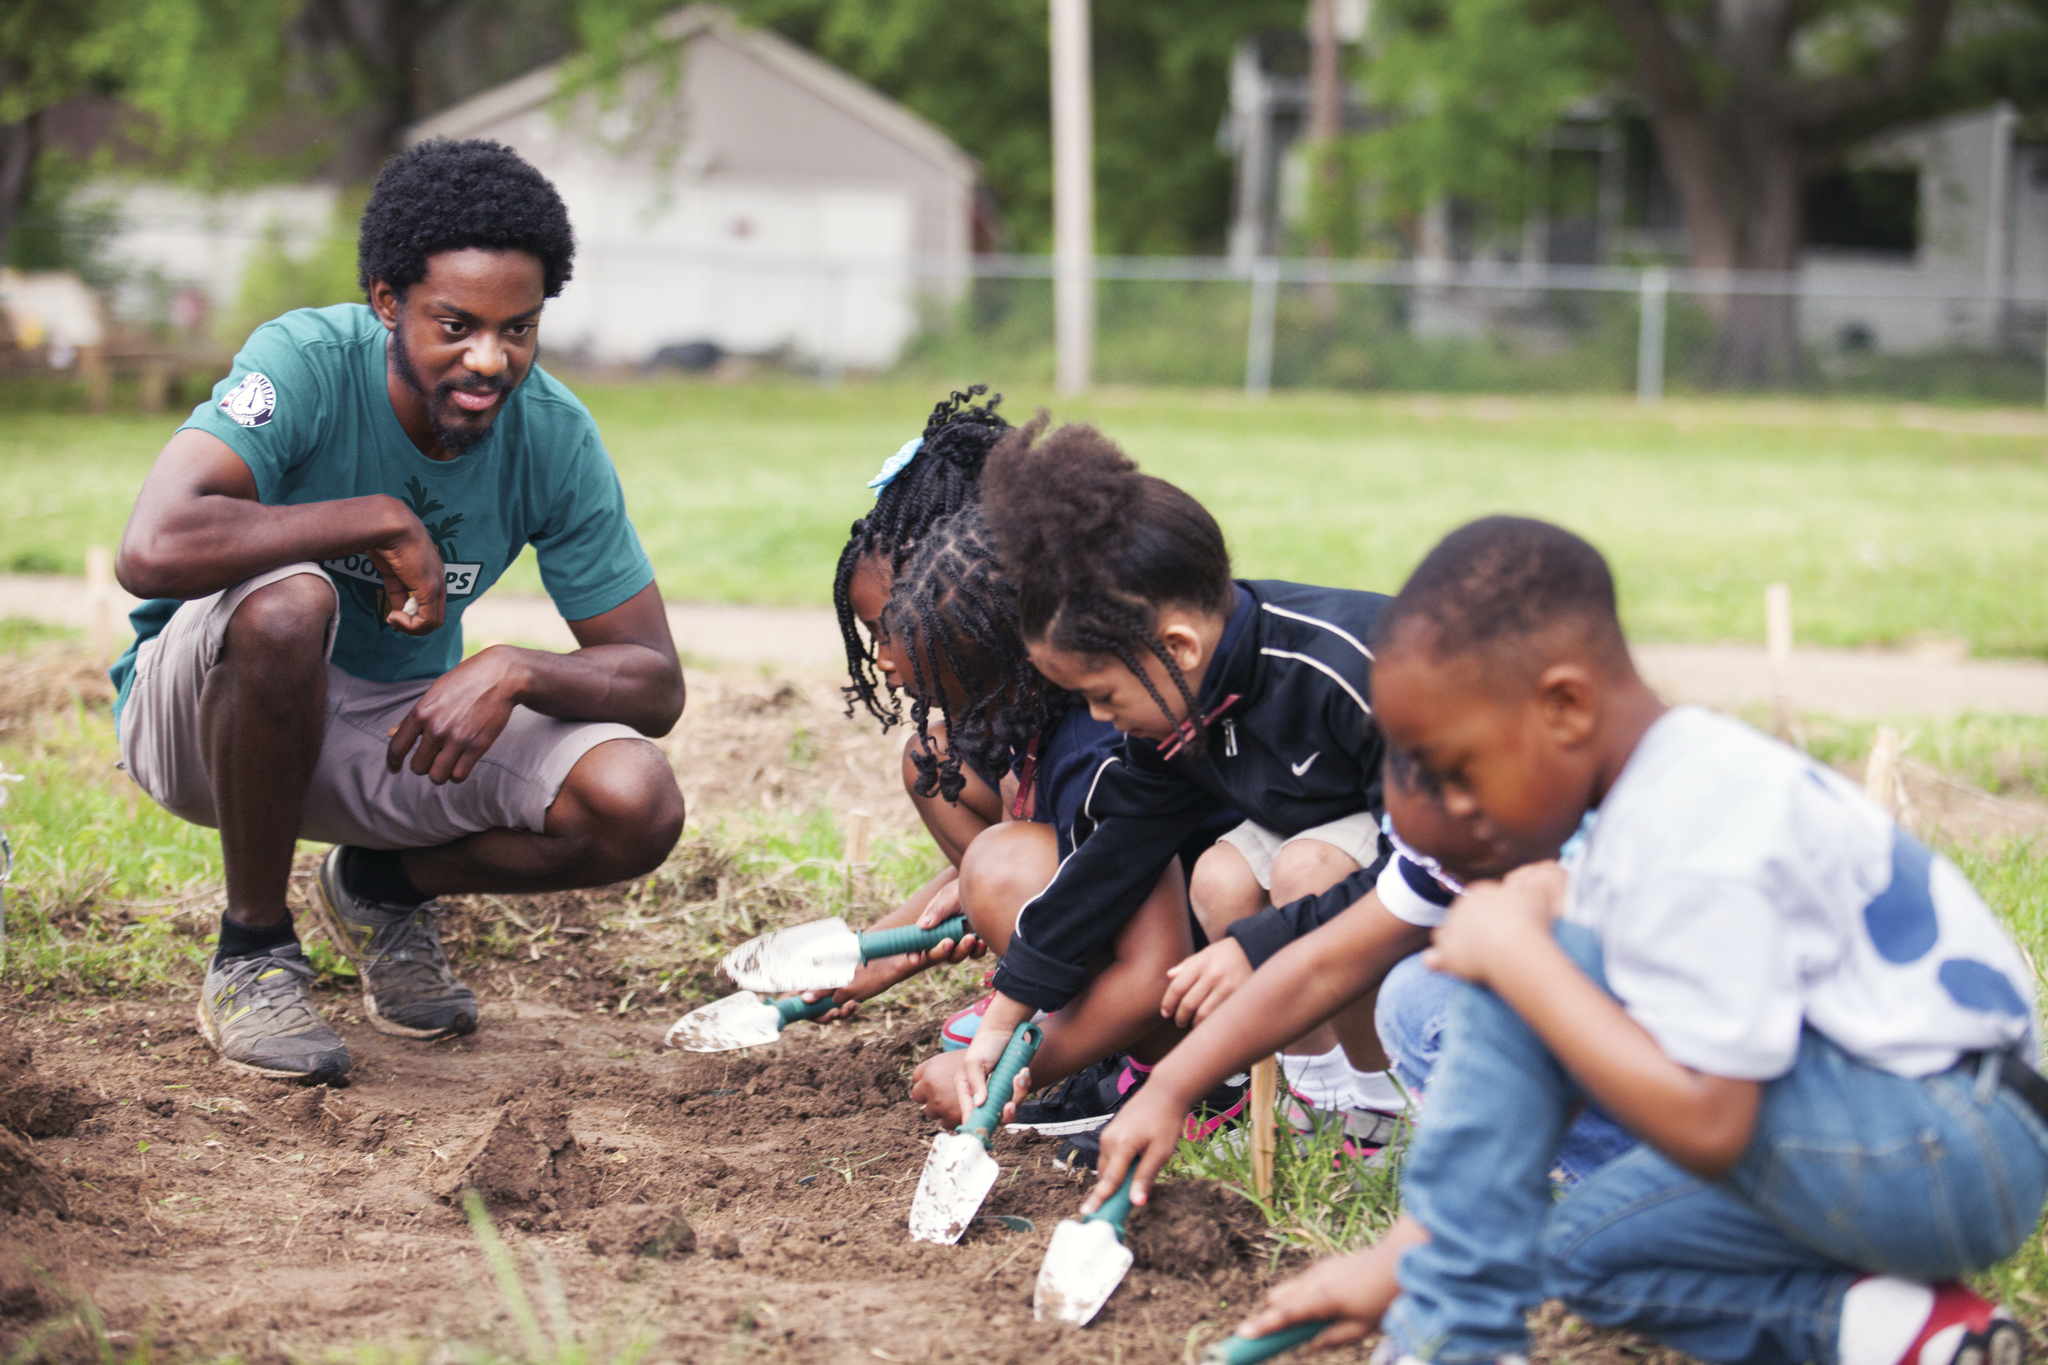 A FoodCorps service member teaches young kids in the garden.